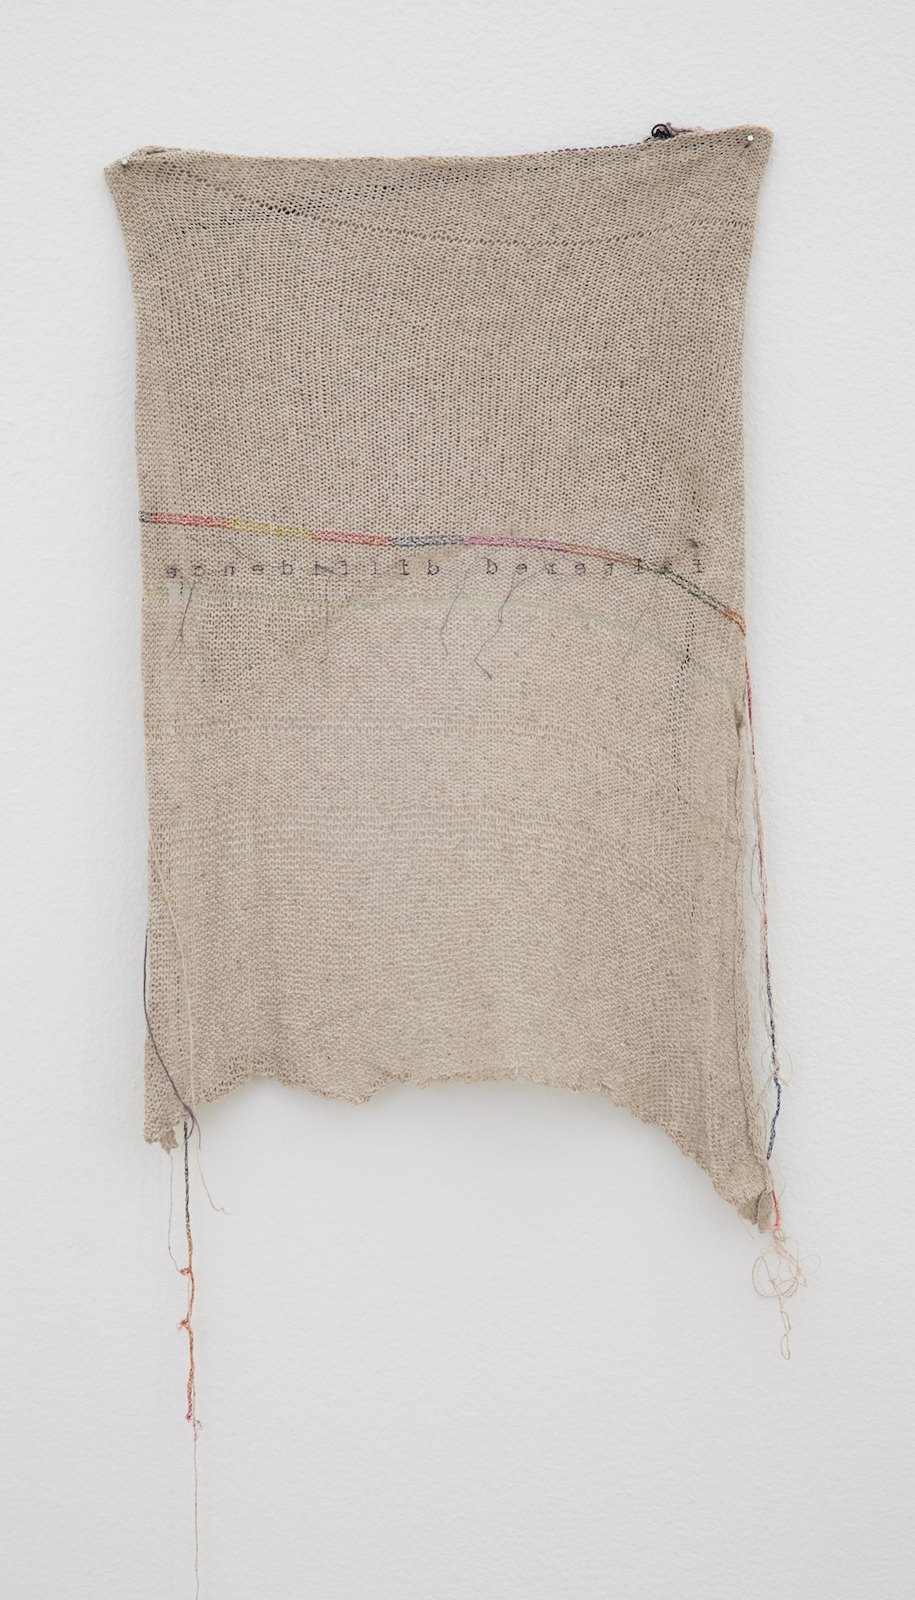 Faltered diffidence, 2014, knitting, silk and embroidery, 90 x 33 cm